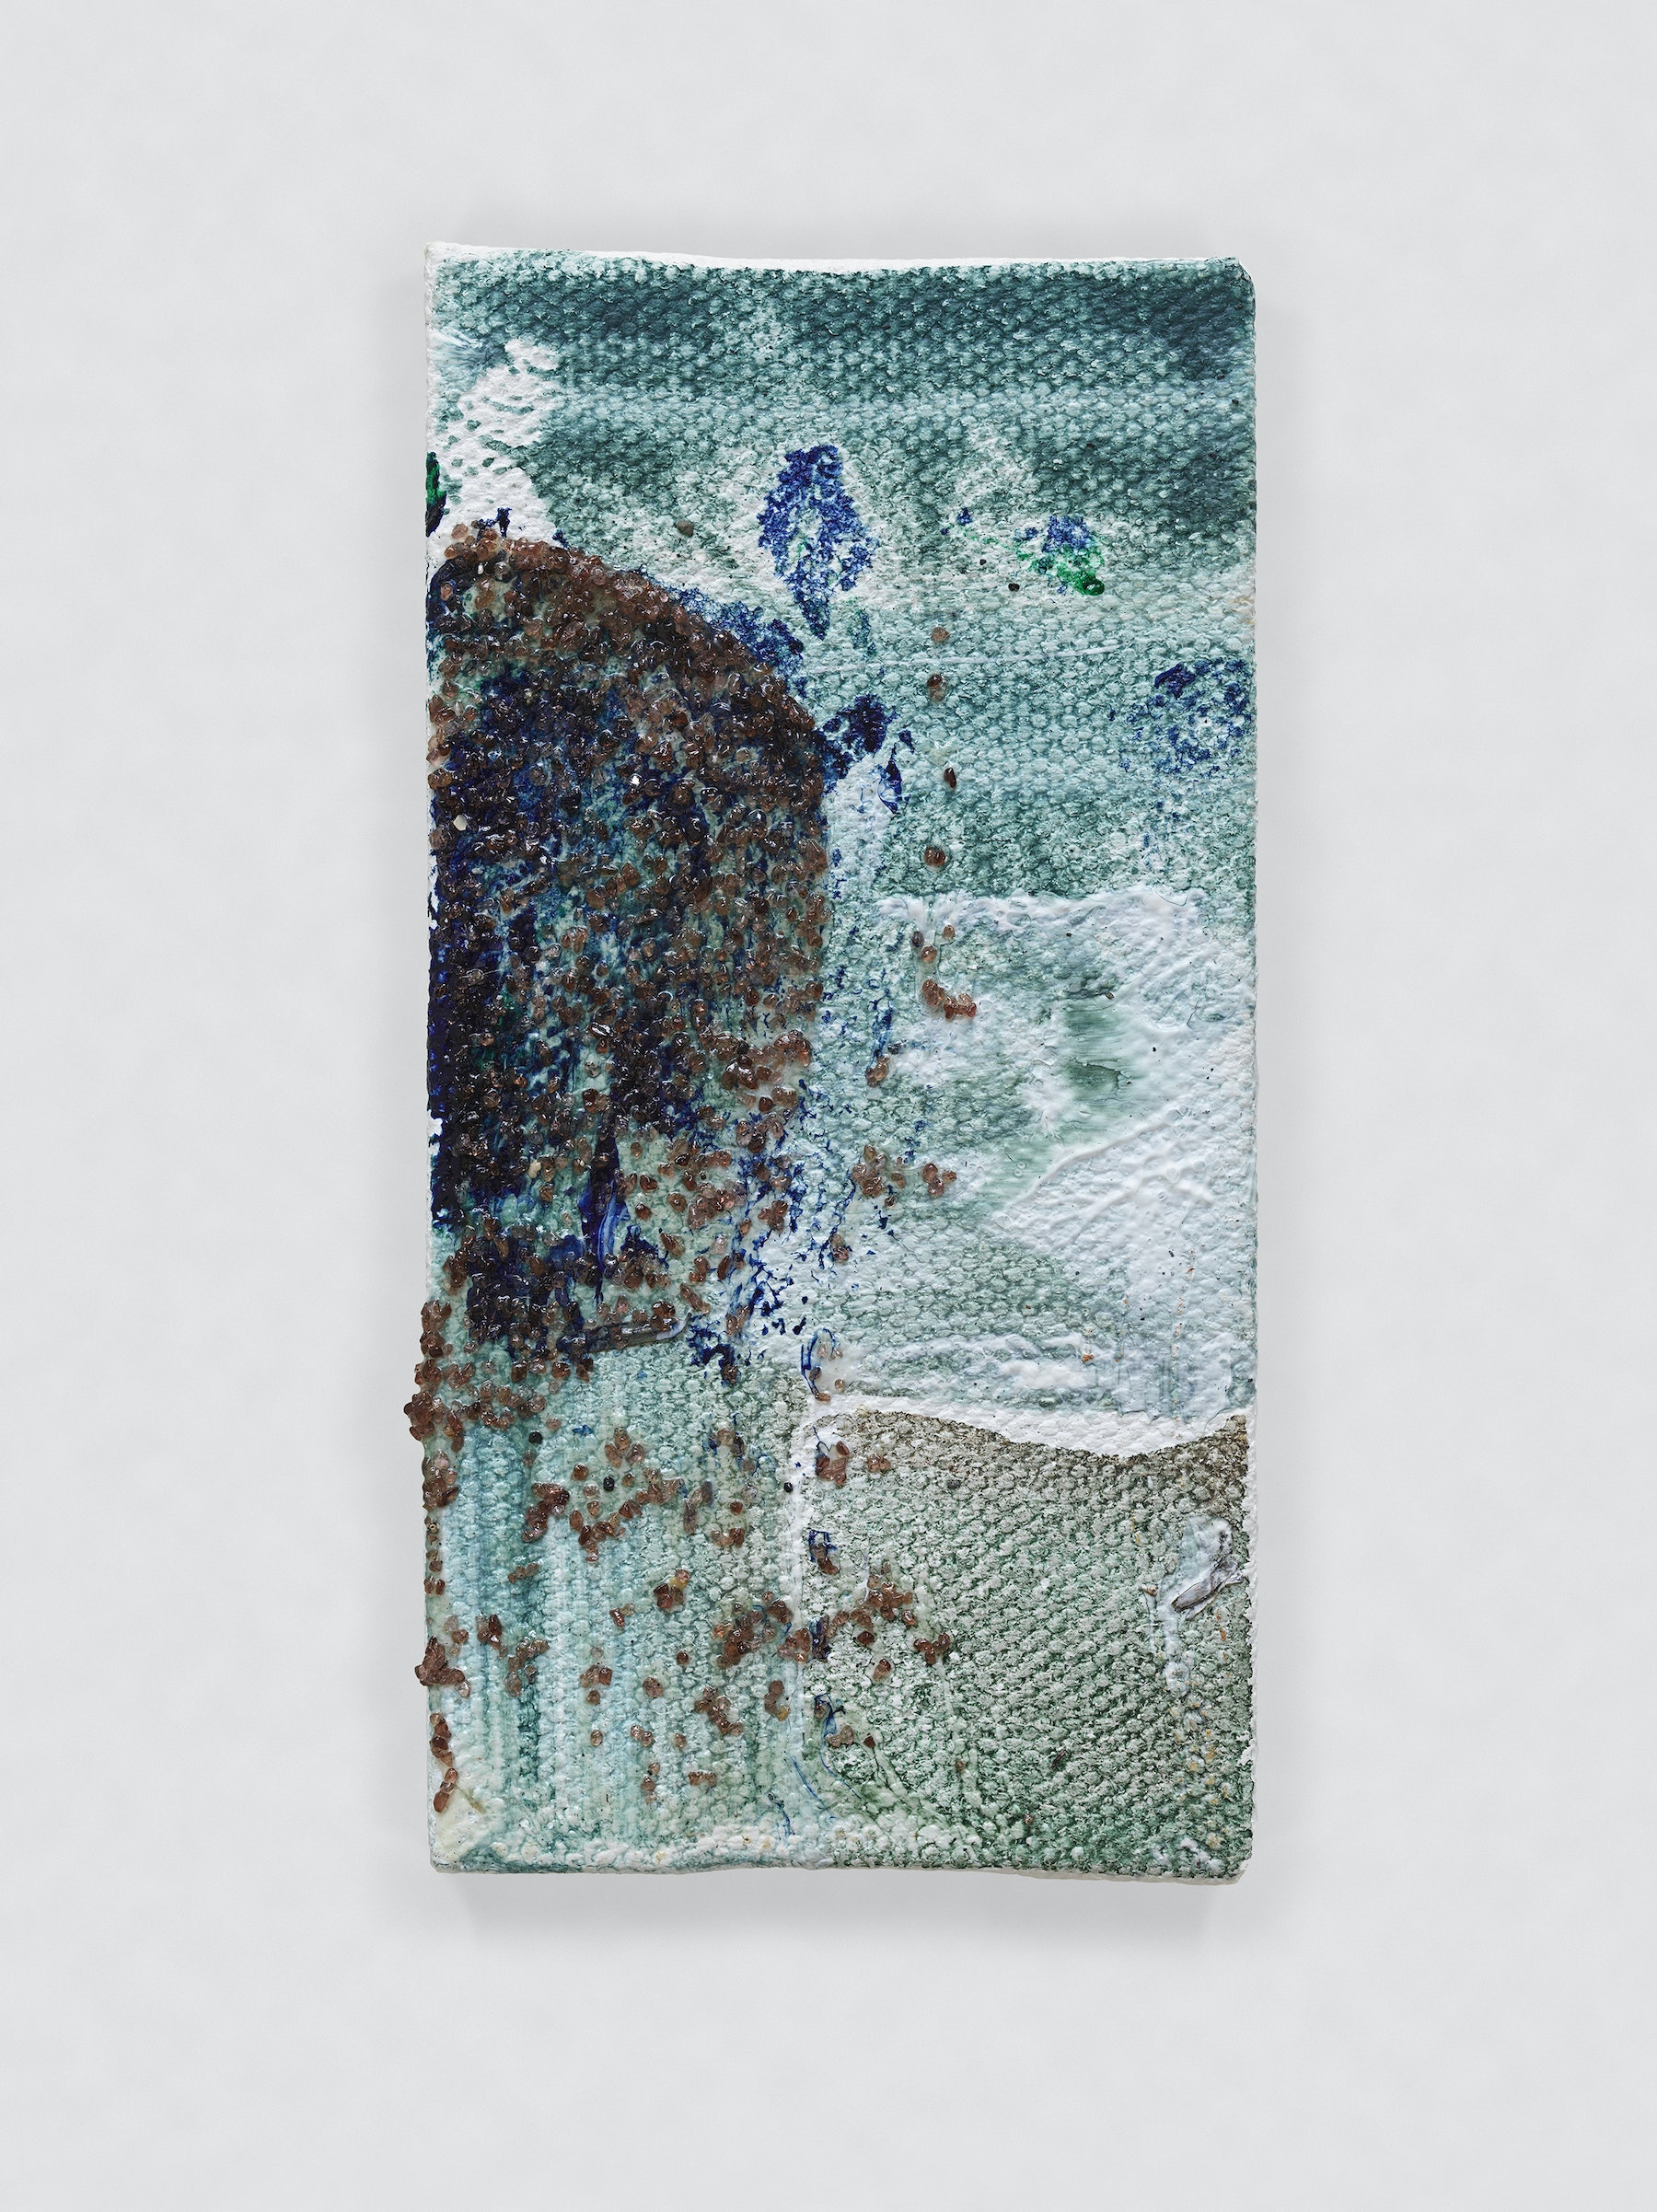 """Louise Fishman """"UNTITLED,"""" 2014 Oil, sand and glue on canvas 4.06 x 2.09"""" [HxW] (10.31 x 5.31 cm) Inventory #FIS143 Courtesy of the artist and Vielmetter Los Angeles Photo credit: Genevieve Hanson Signed and dated on verso"""